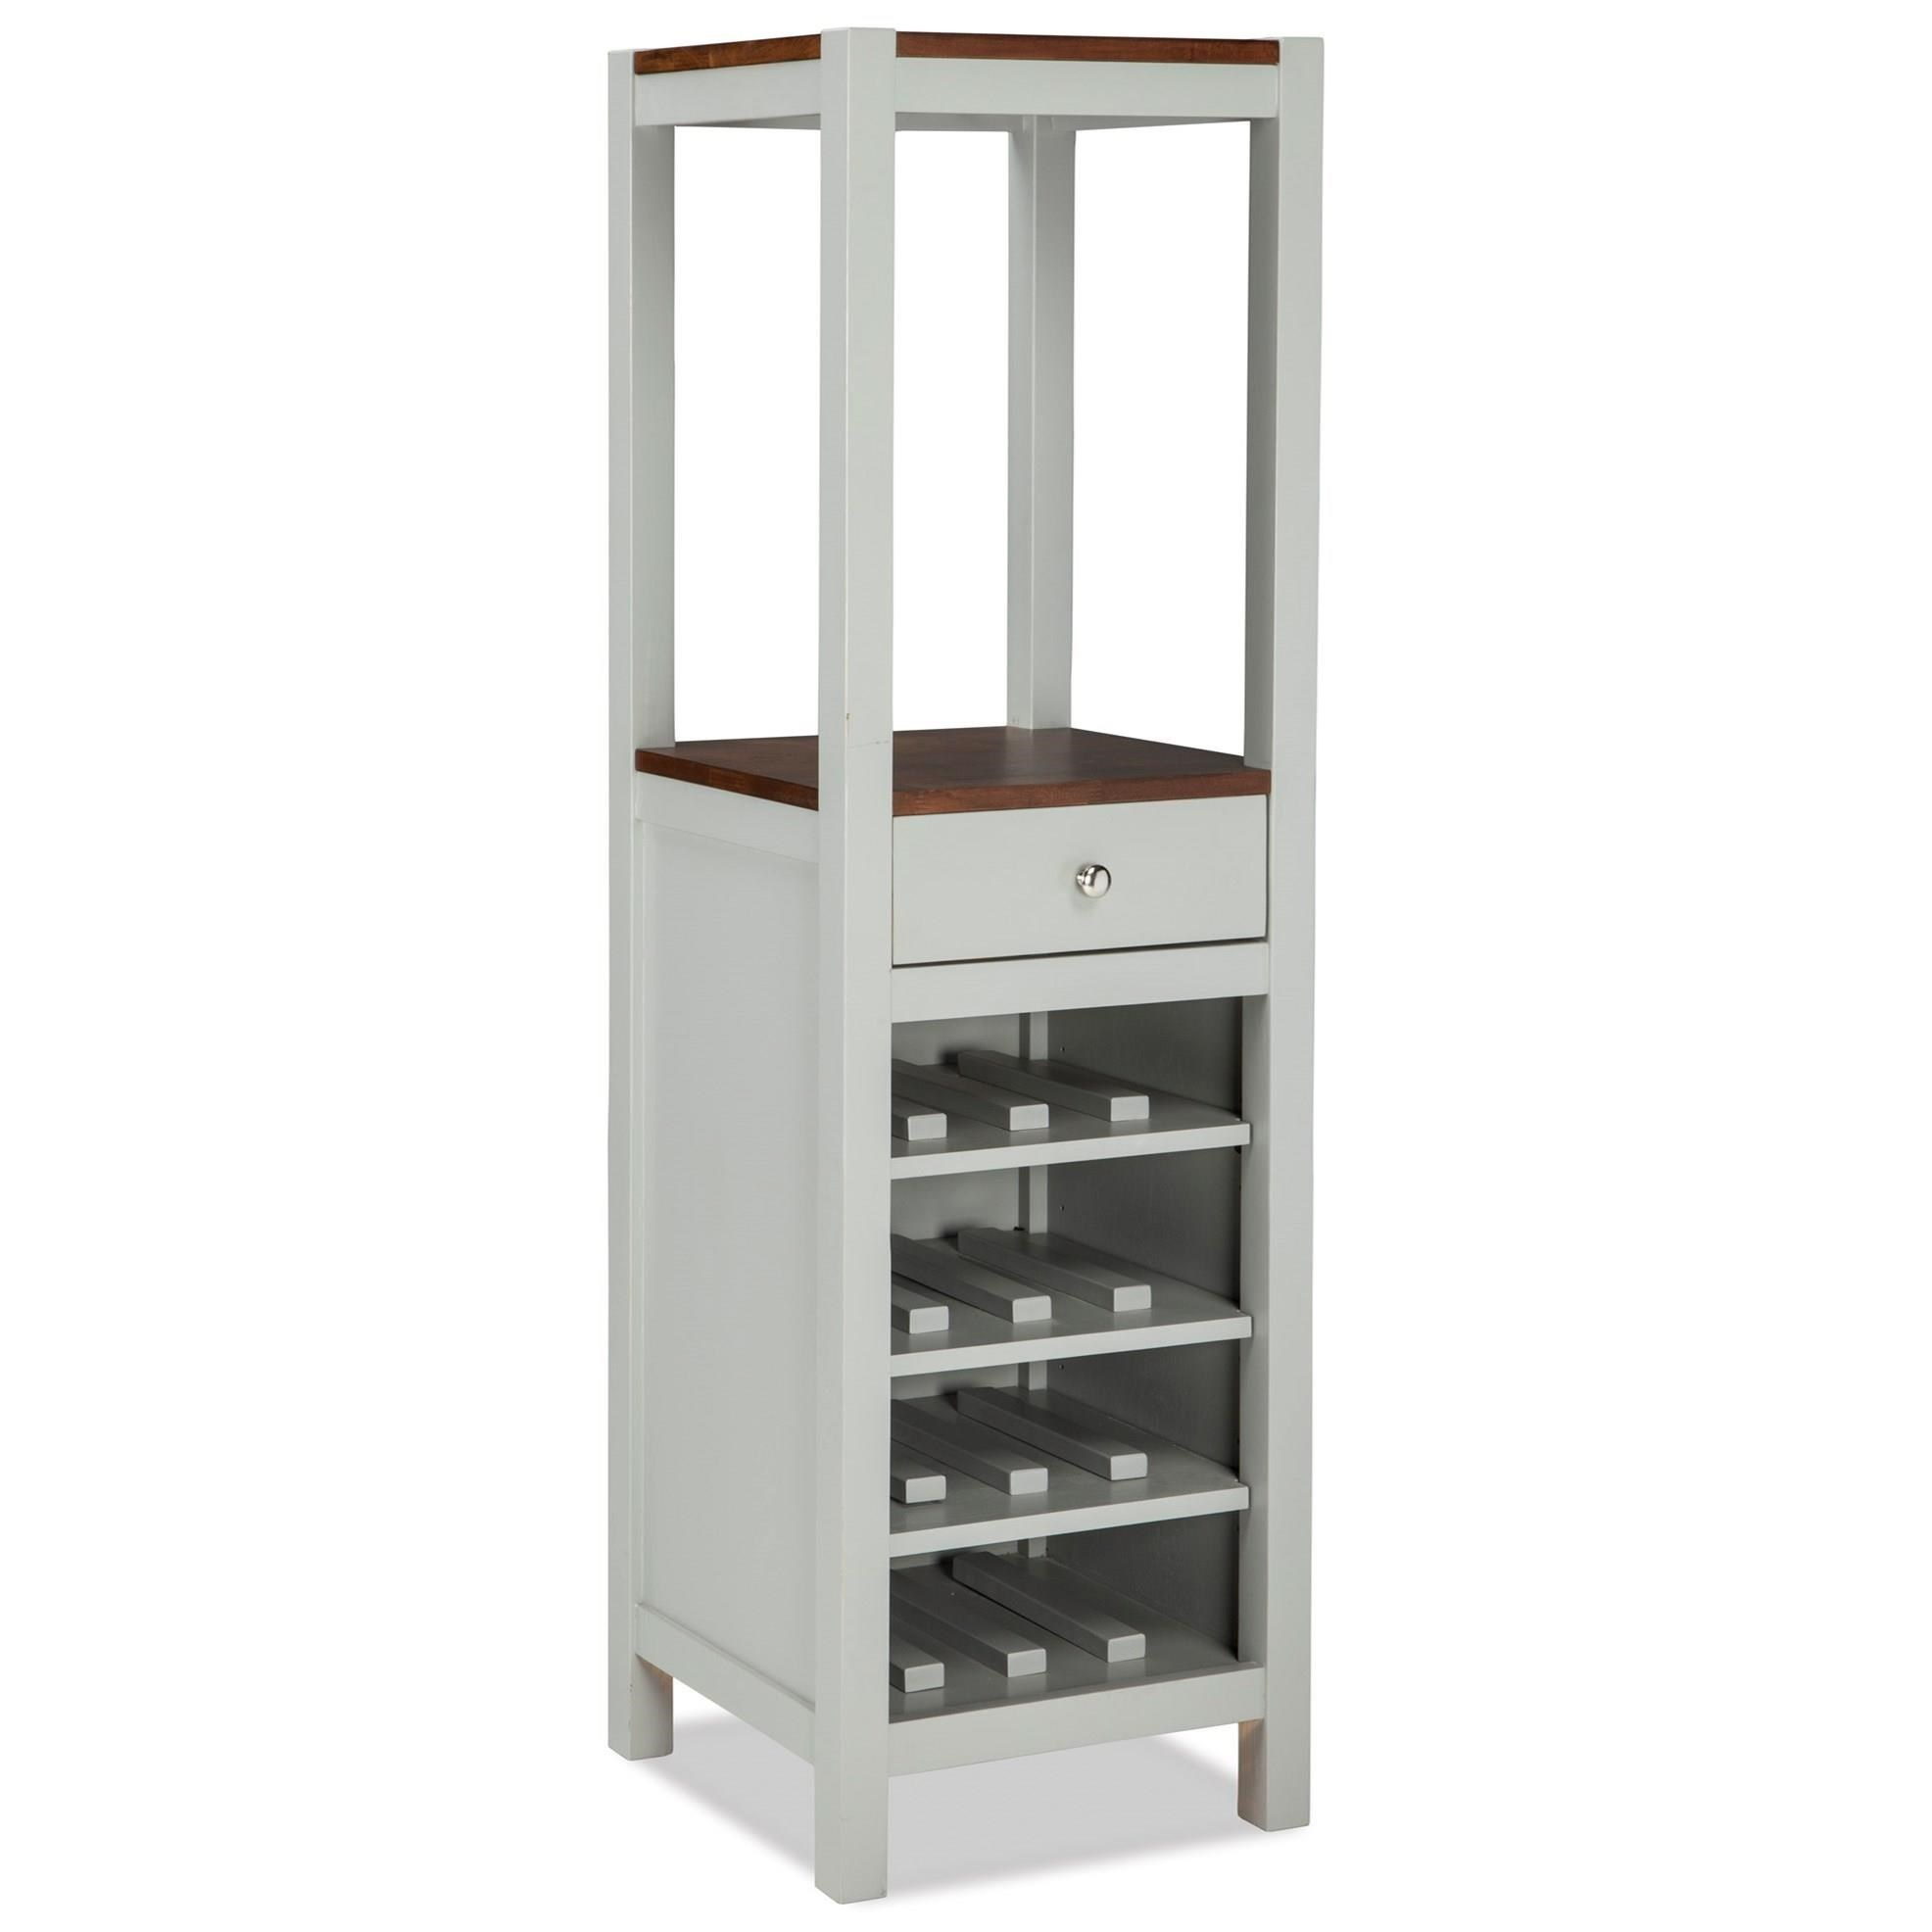 Vertical Wine Cabinet Intercon Small Space Vertical Wine And Dining Storage